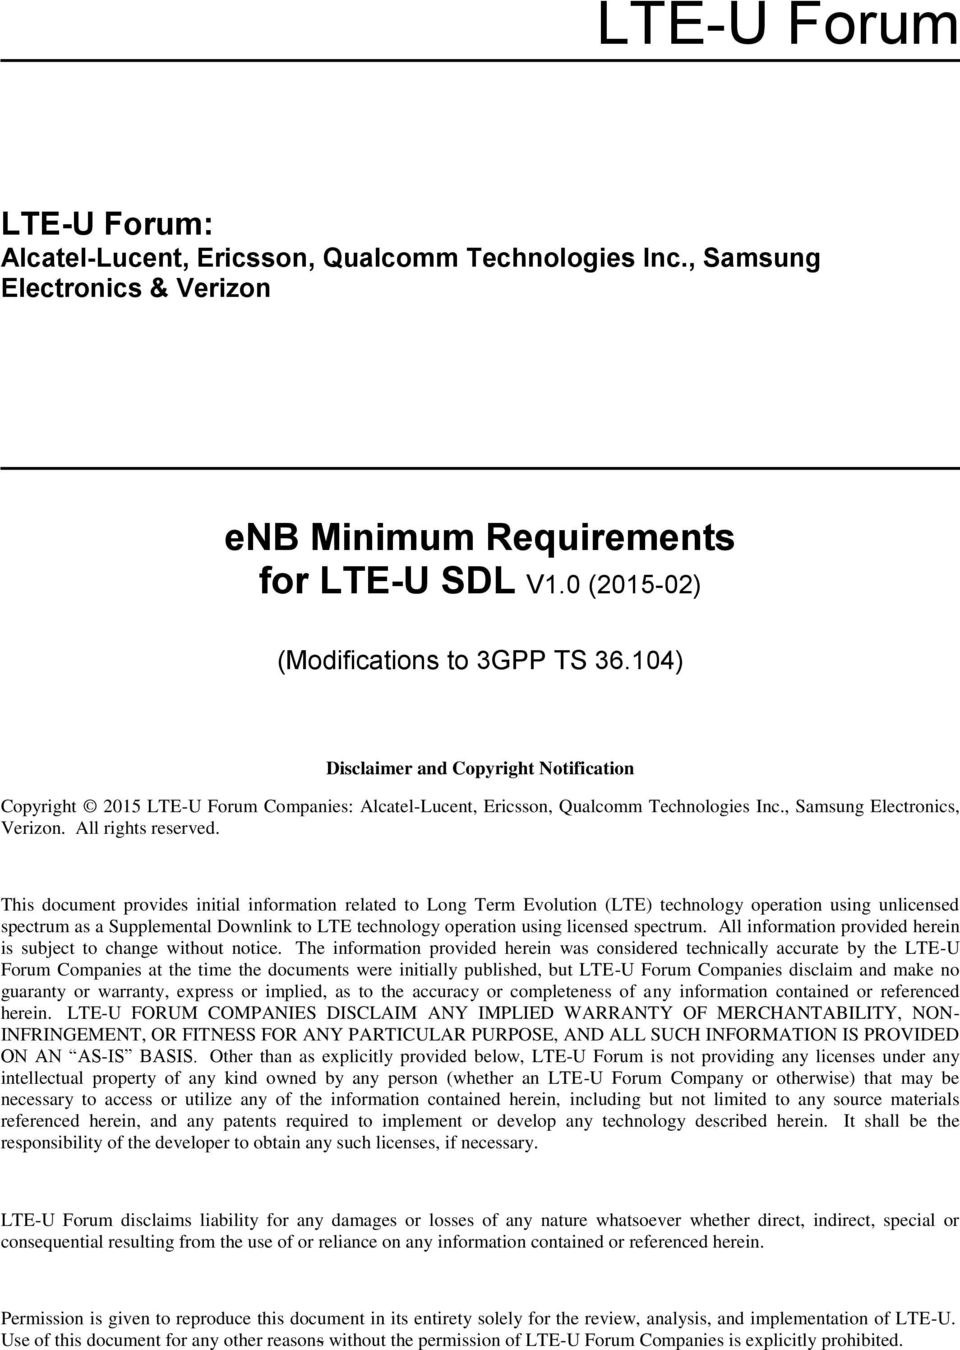 This document provides initial information related to Long Term Evolution (LTE) technology operation using unlicensed spectrum as a Supplemental Downlink to LTE technology operation using licensed